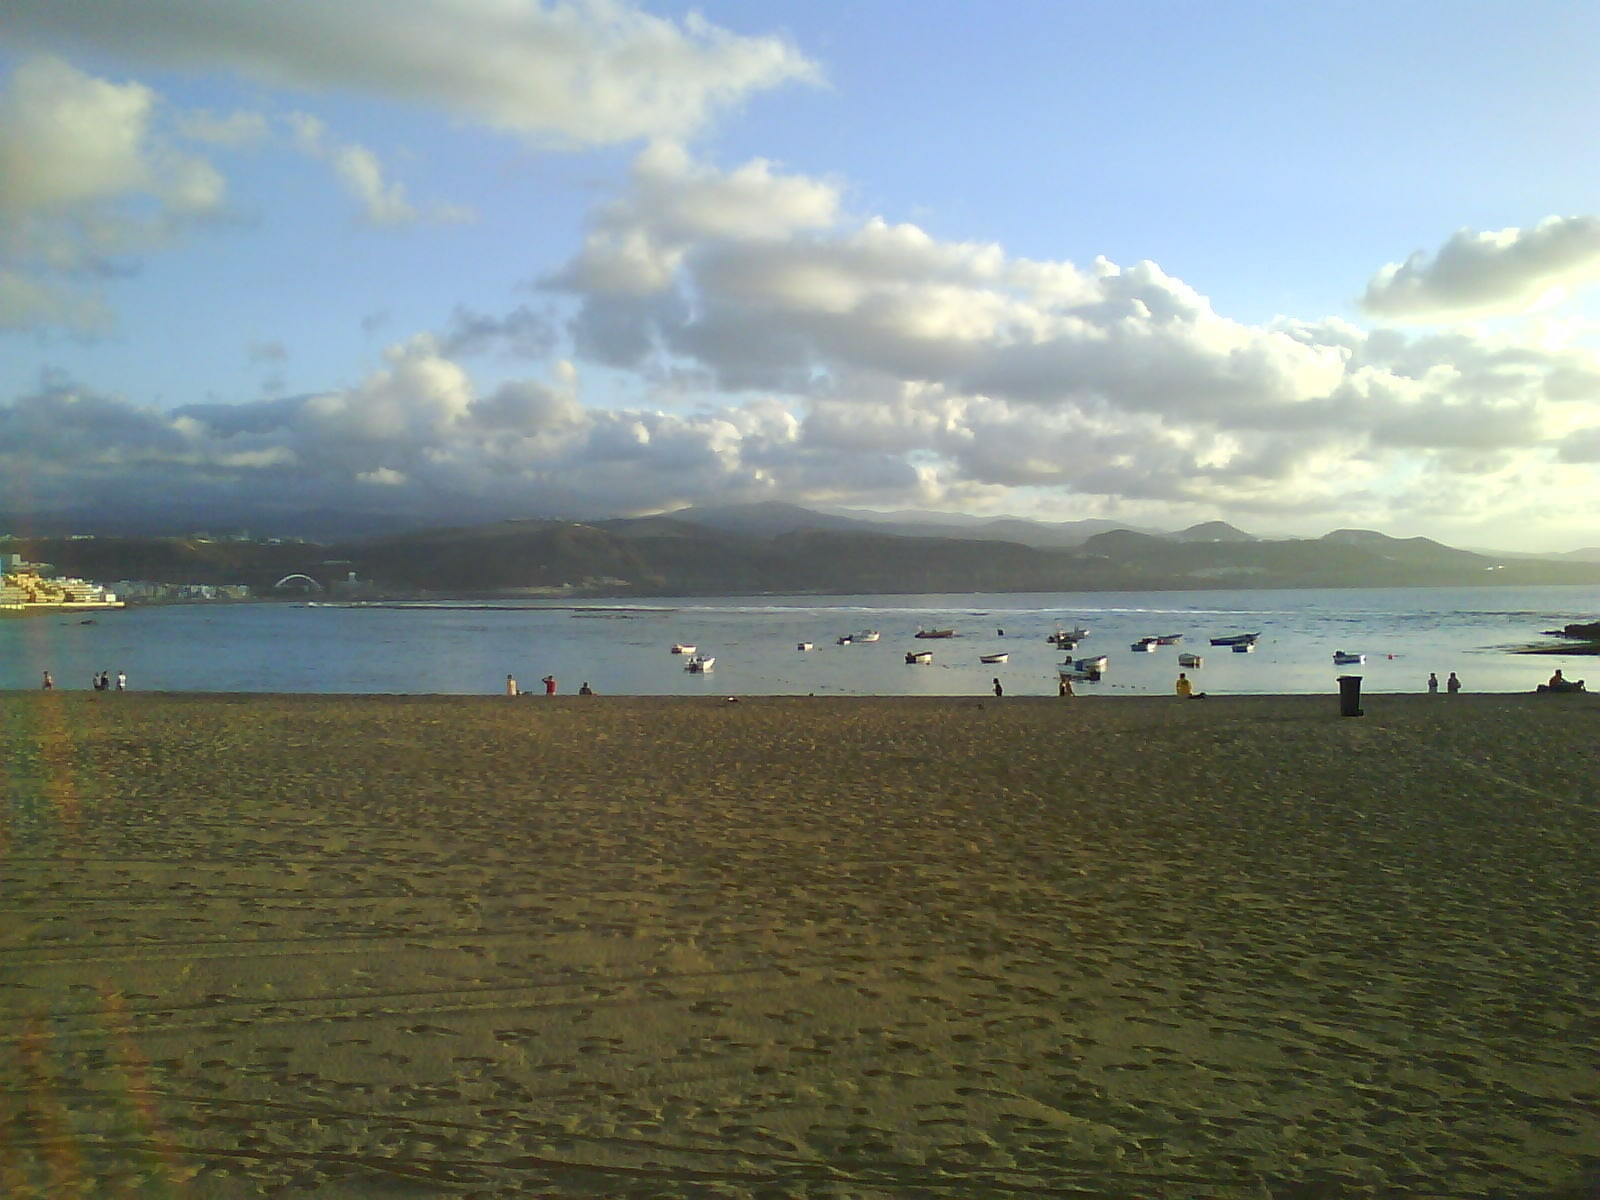 Embalse en Playa de Las Canteras